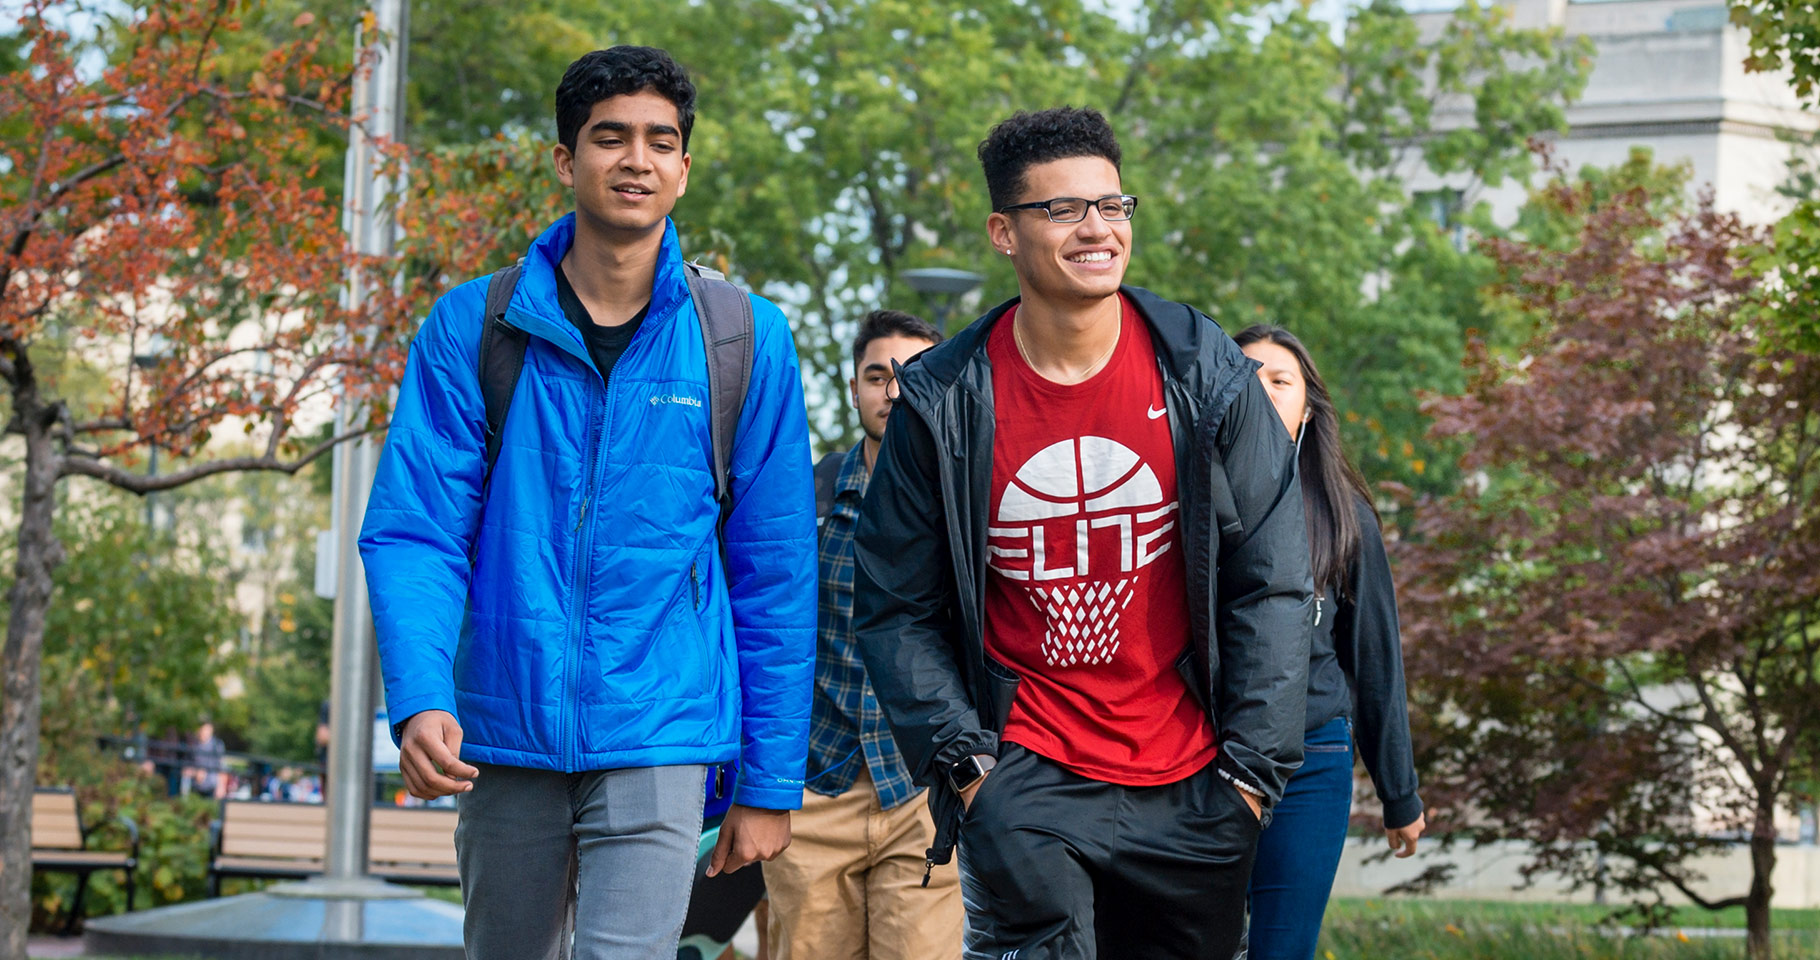 CWRU students smiling while walking outside